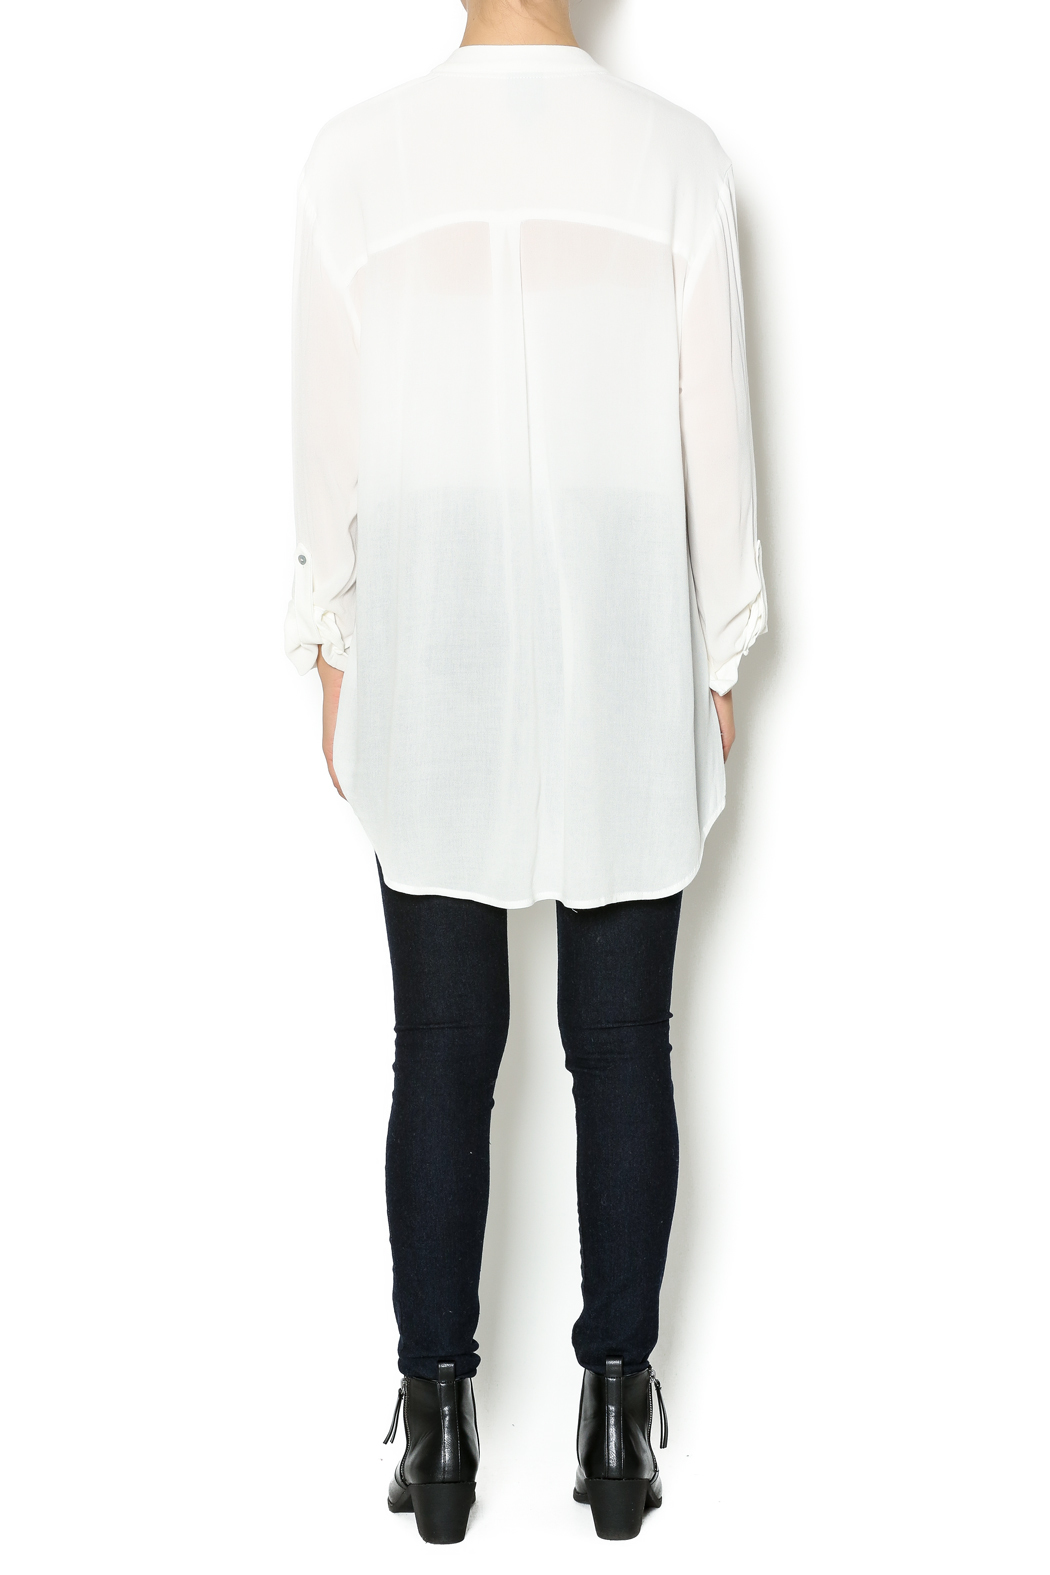 Bobeau White Tunic Blouse from Arkansas by Lois Gean's — Shoptiques